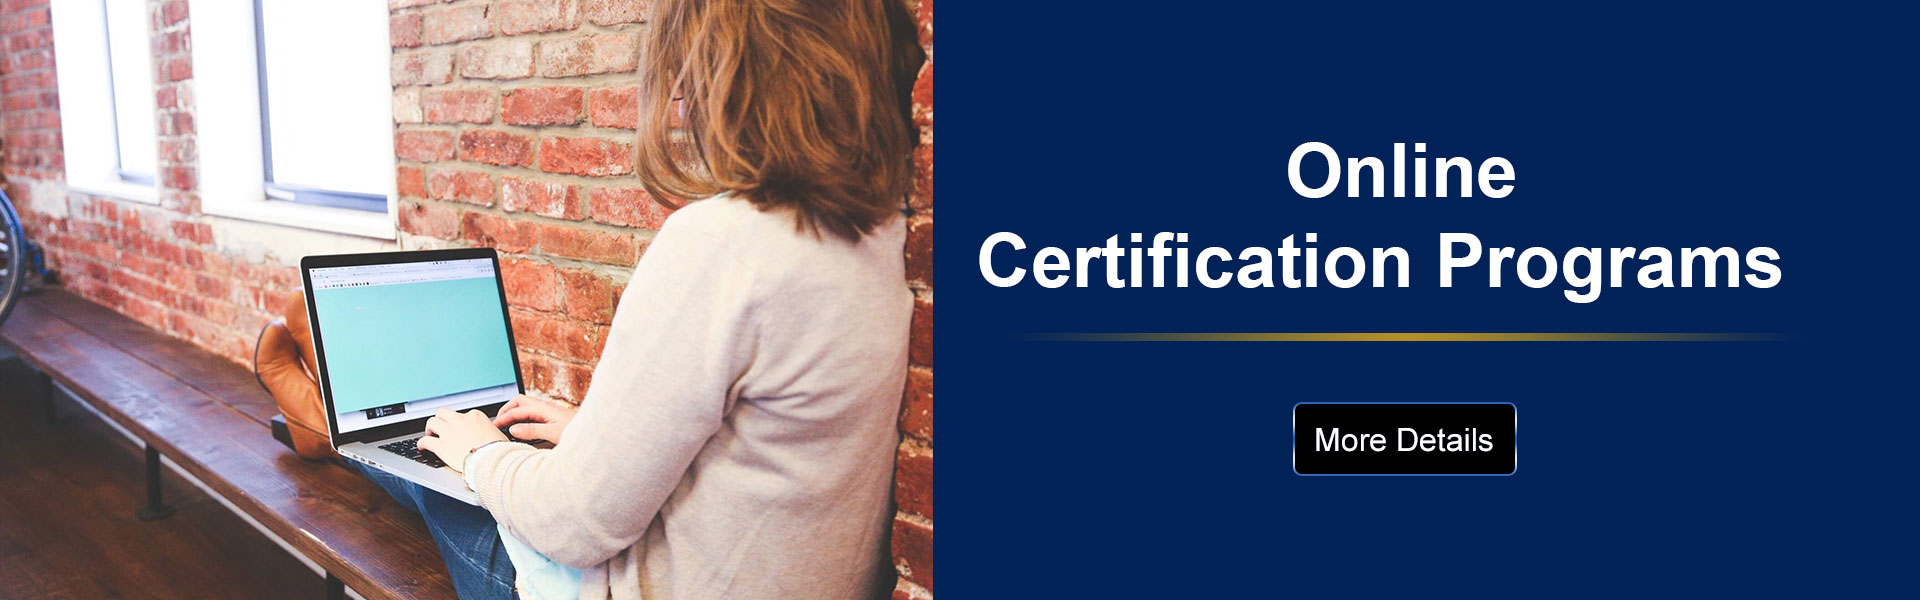 online certification programs